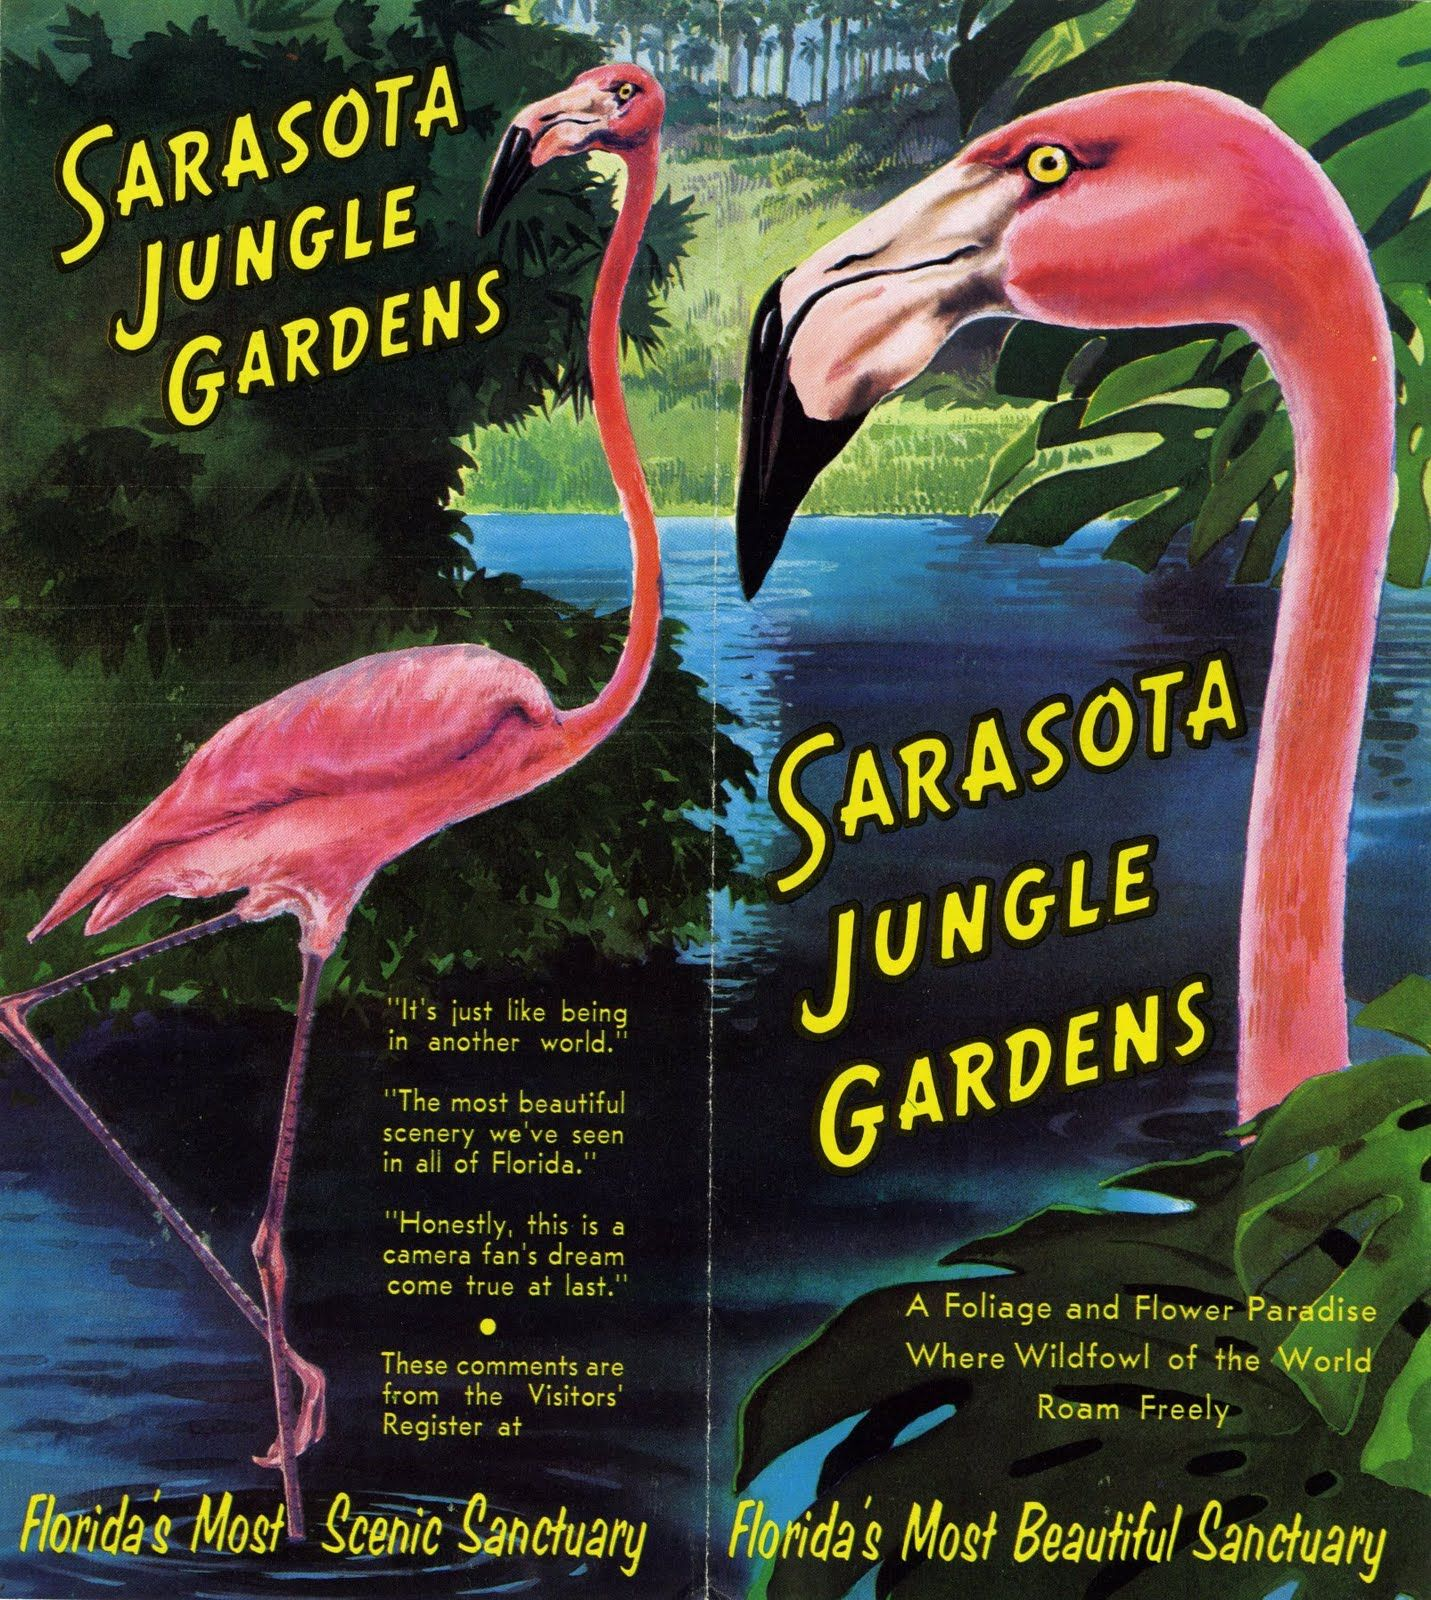 A Brochure For Sarasota Jungle Gardens In Sarasota Florida Sarasota Pinterest Jungle